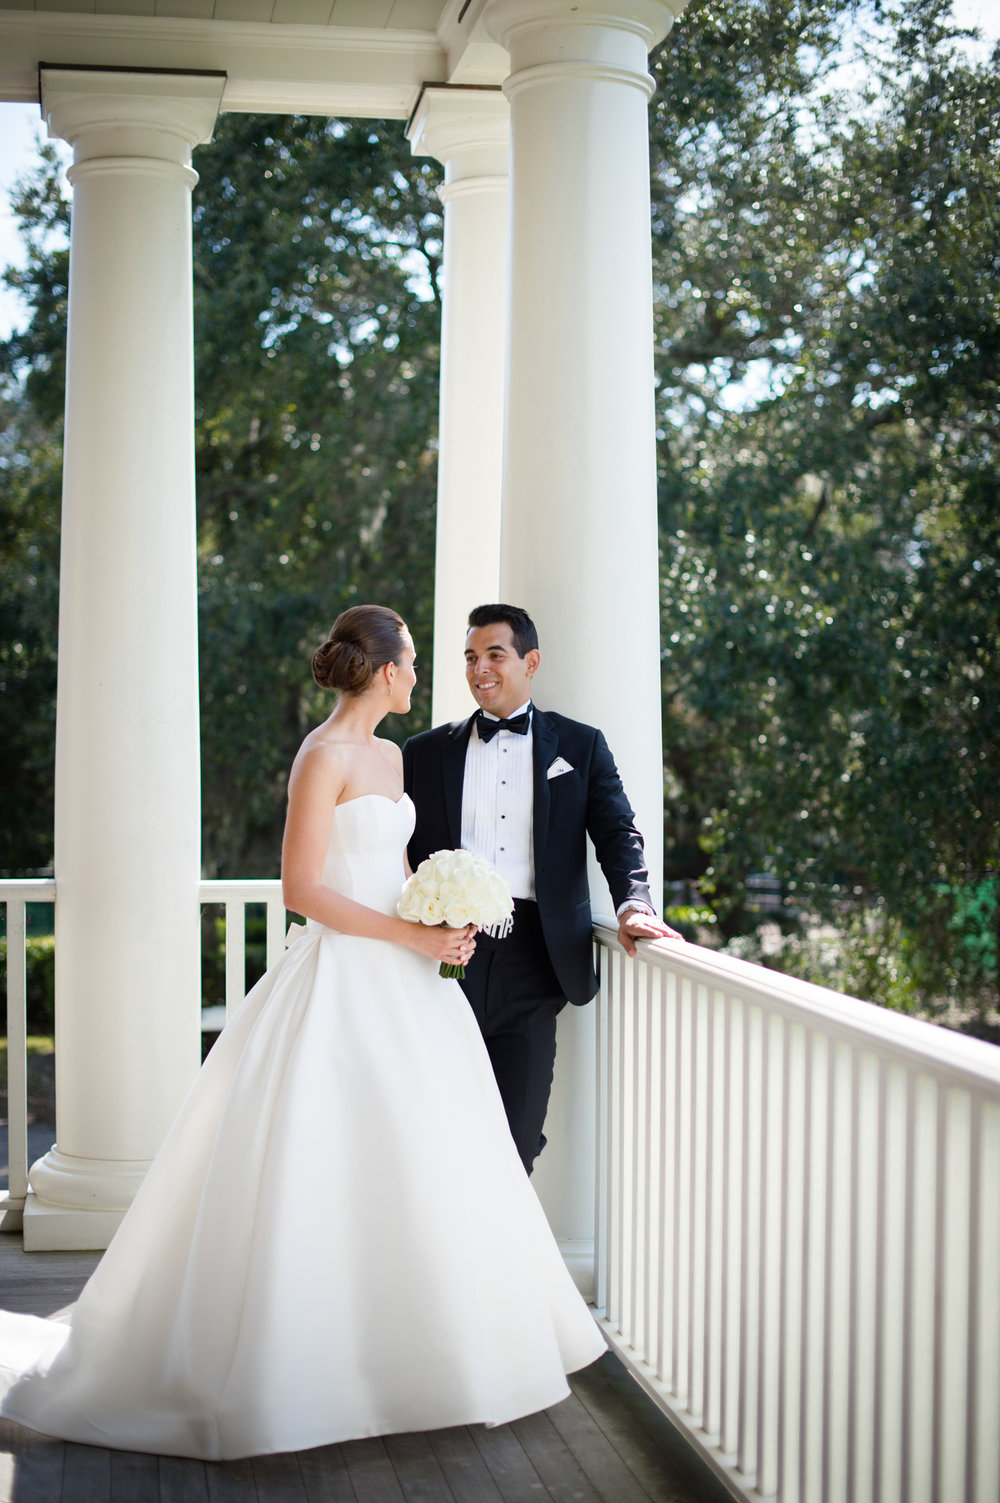 Portrait of bride and groom at Kiawah Island River Course wedding